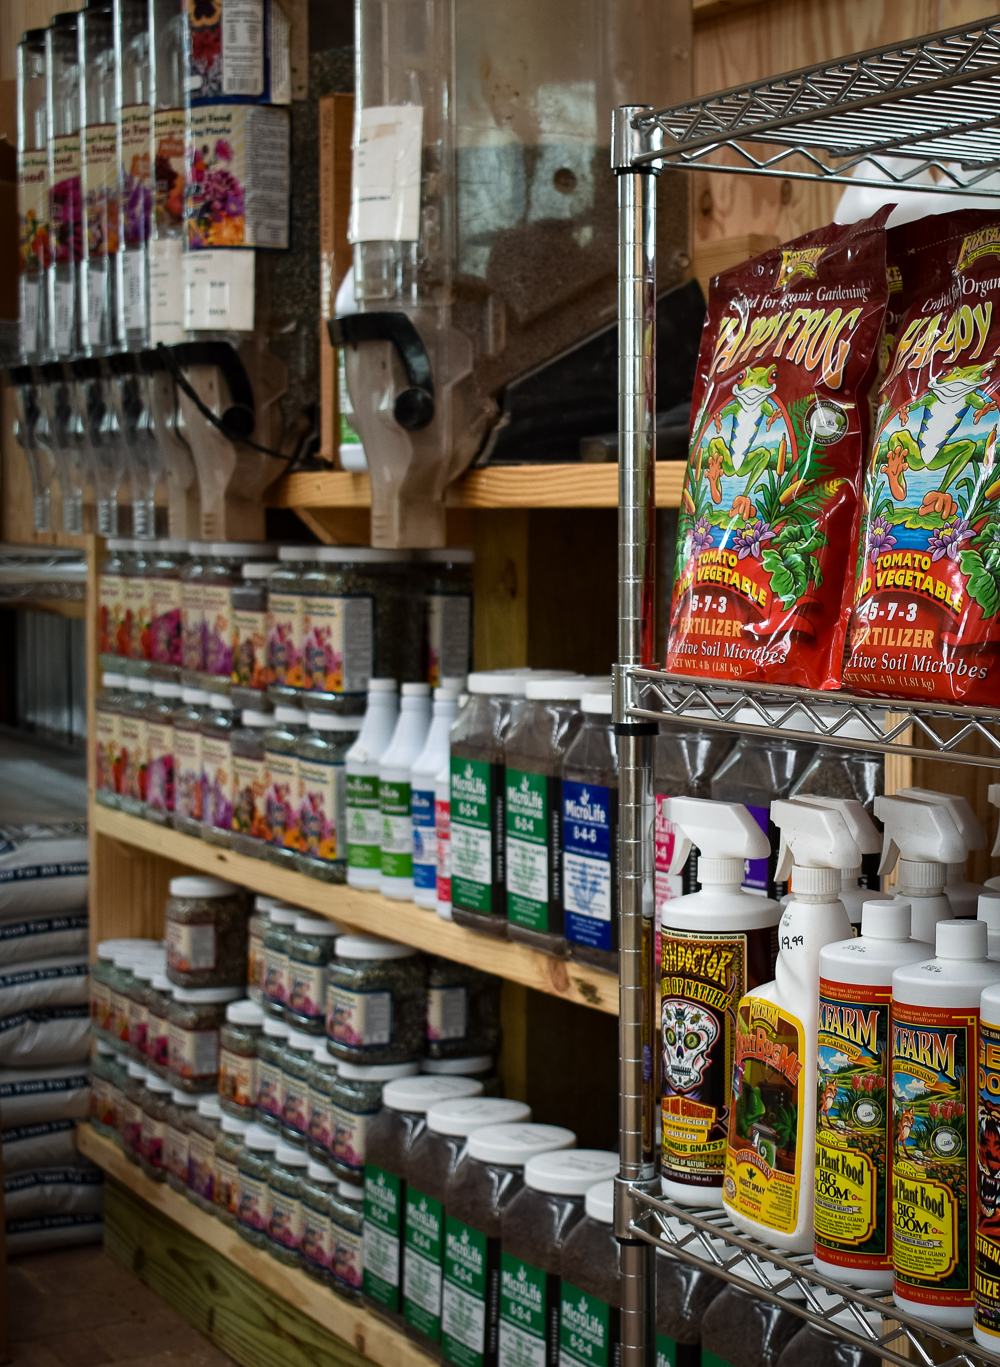 Organized shelves of fertilizers to suit all kinds of specific needs at Enchanted Forest.